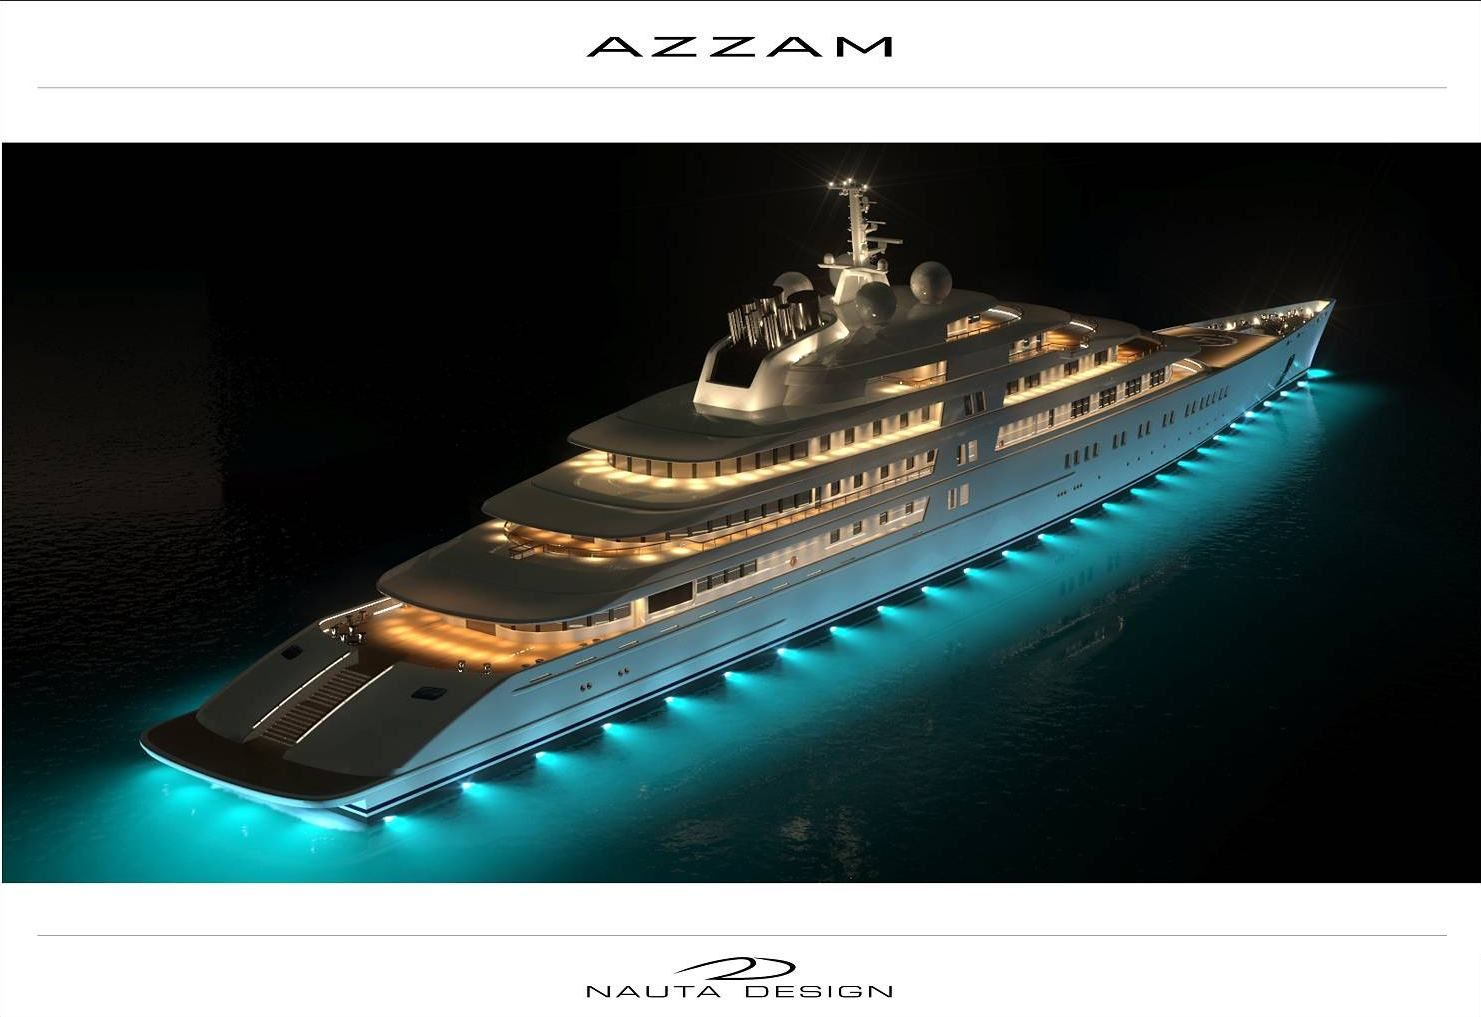 WORLD's LARGEST YACHT AZZAM INTERESTING THINGS Do You